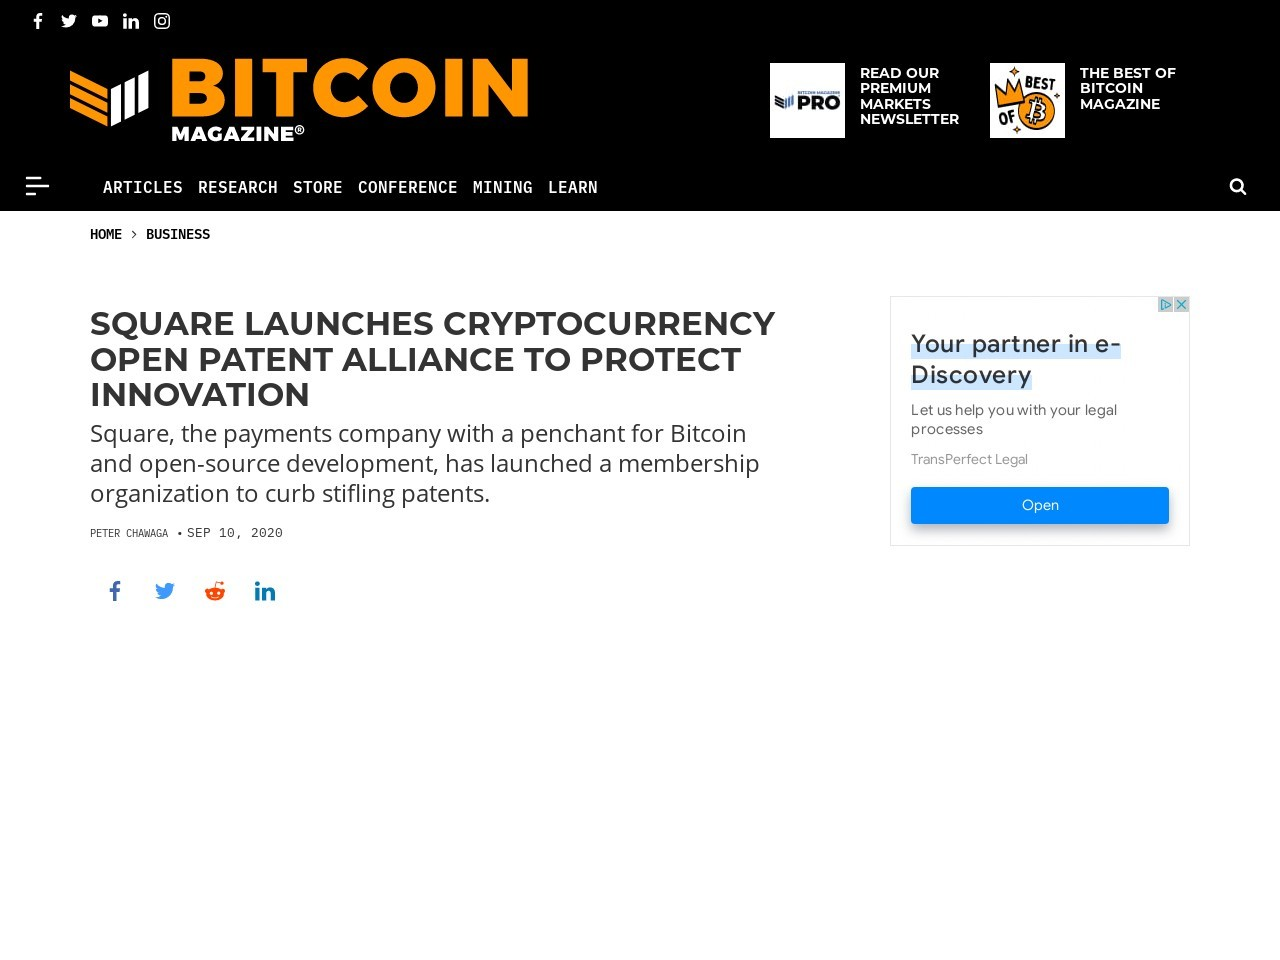 Square Launches Cryptocurrency Open Patent Alliance To Protect Innovation